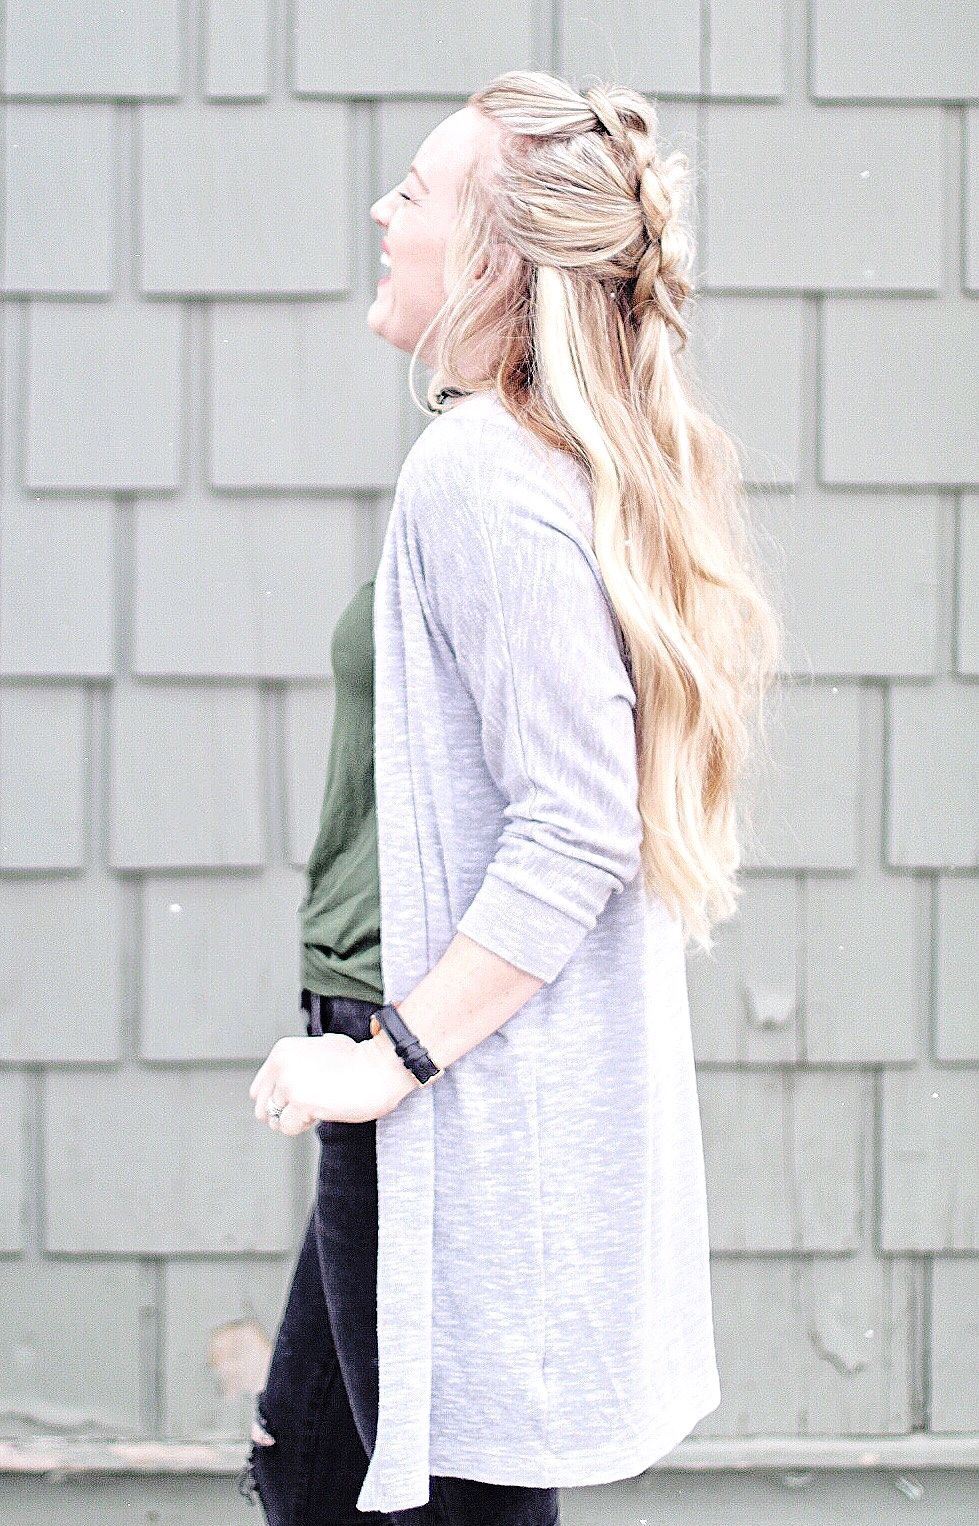 A simple cute style for long hair positivelyoakes on instagram